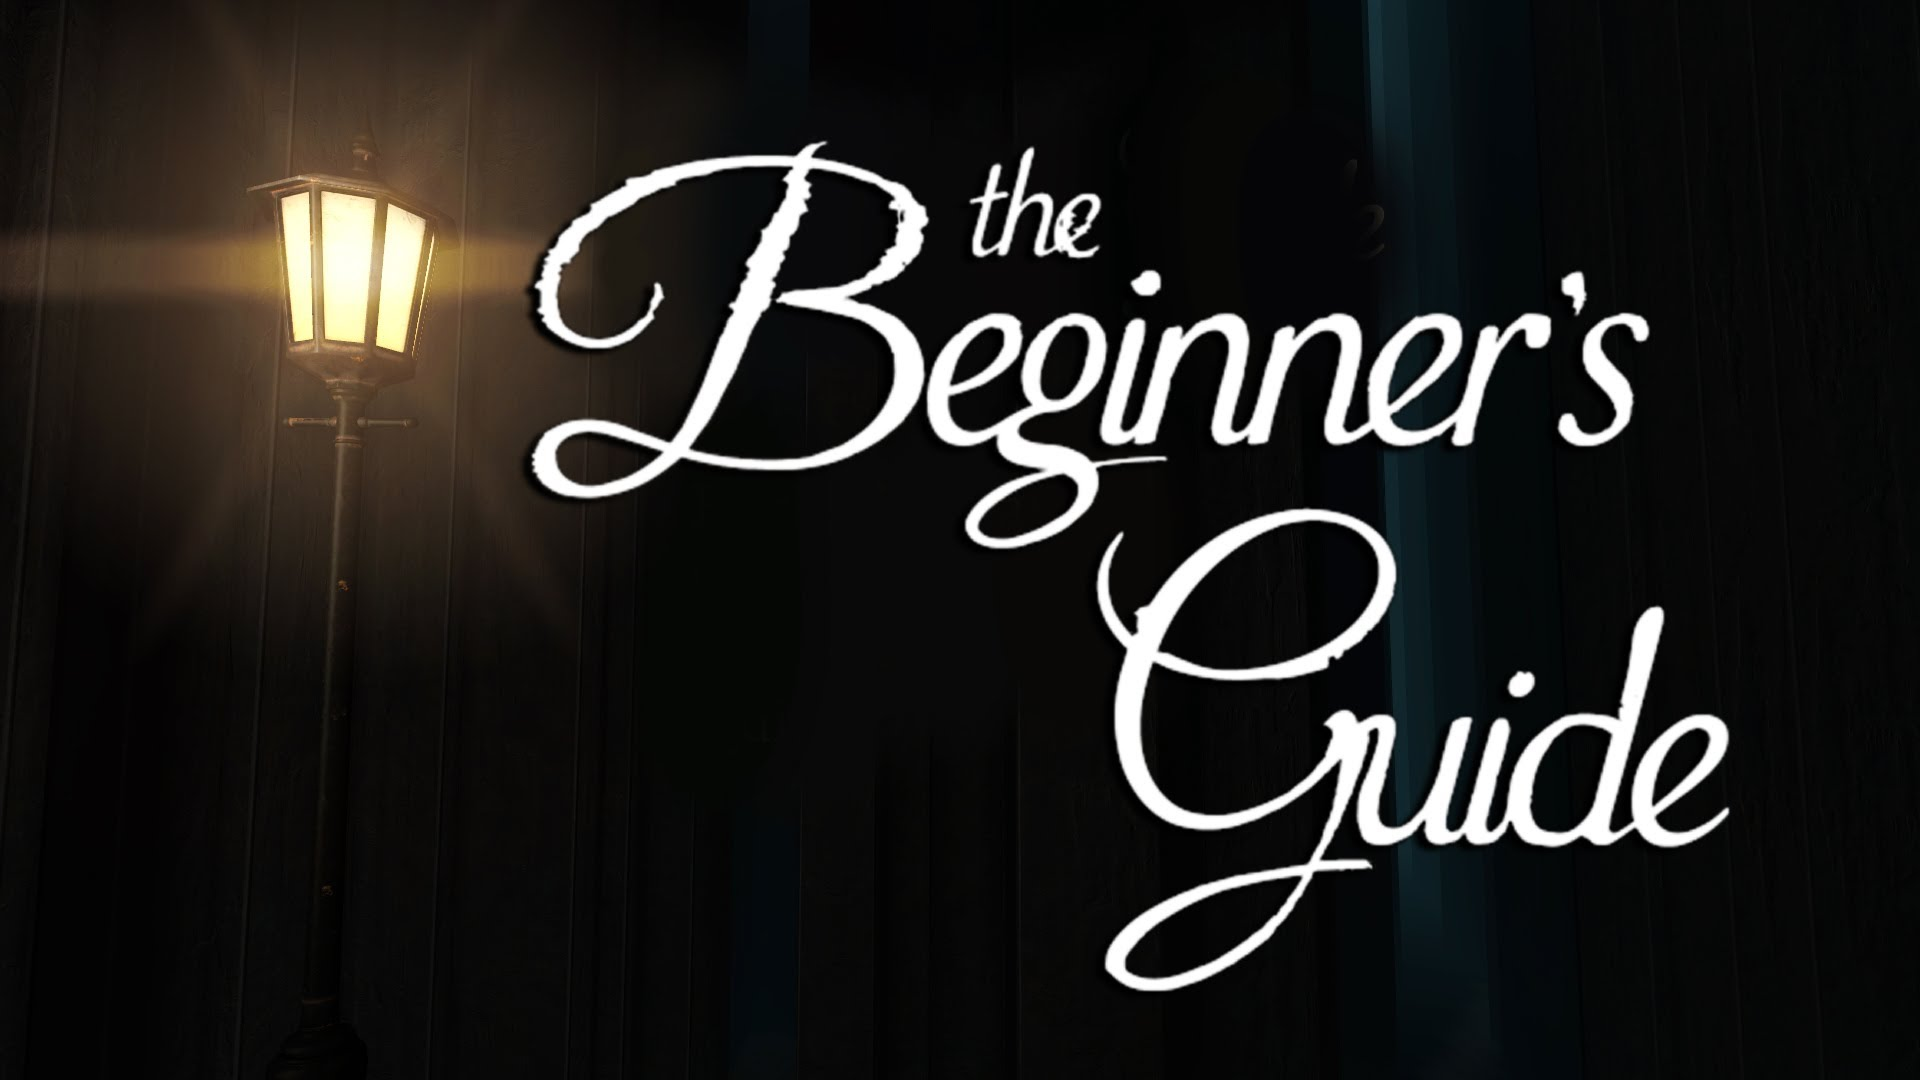 The Beginners Guide #1, Kapitel 1-7 [EN/GER, NO COMMENT]